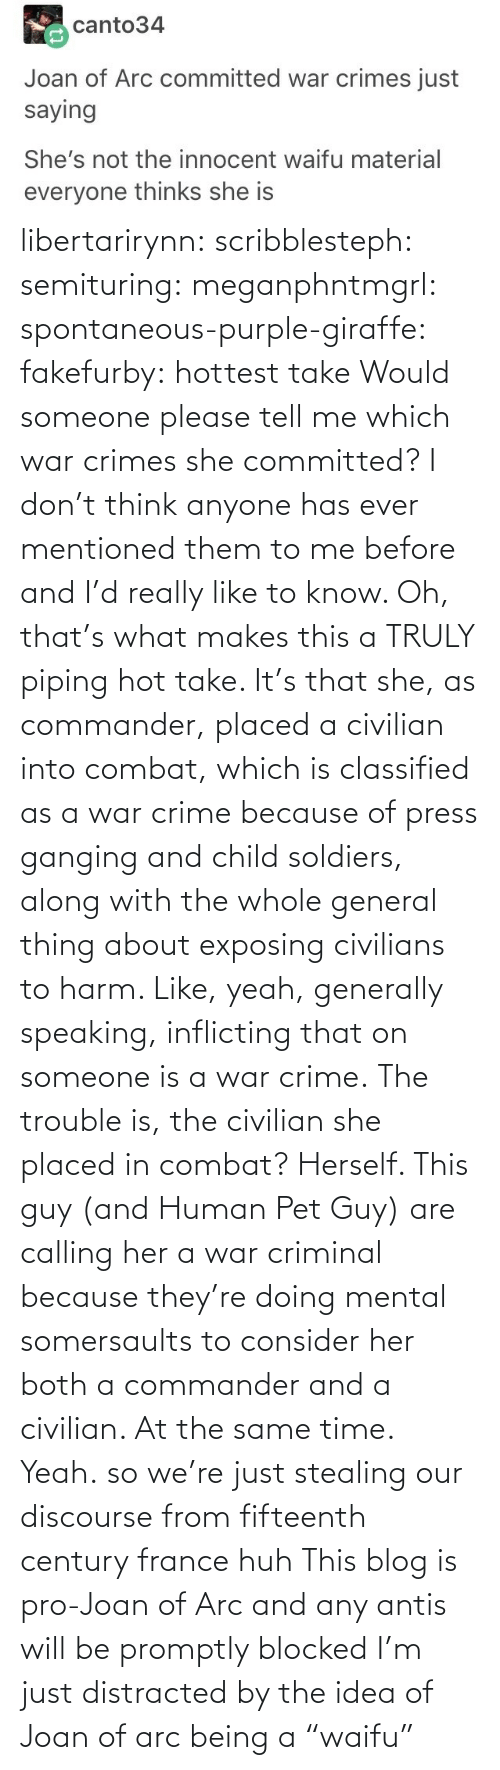 "pet: libertarirynn: scribblesteph:  semituring:  meganphntmgrl:  spontaneous-purple-giraffe:   fakefurby: hottest take  Would someone please tell me which war crimes she committed? I don't think anyone has ever mentioned them to me before and I'd really like to know.    Oh, that's what makes this a TRULY piping hot take. It's that she, as commander, placed a civilian into combat, which is classified as a war crime because of press ganging and child soldiers, along with the whole general thing about exposing civilians to harm. Like, yeah, generally speaking, inflicting that on someone is a war crime. The trouble is, the civilian she placed in combat? Herself.  This guy (and Human Pet Guy) are calling her a war criminal because they're doing mental somersaults to consider her both a commander and a civilian. At the same time.  Yeah.  so we're just stealing our discourse from fifteenth century france huh   This blog is pro-Joan of Arc and any antis will be promptly blocked   I'm just distracted by the idea of Joan of arc being a ""waifu"""